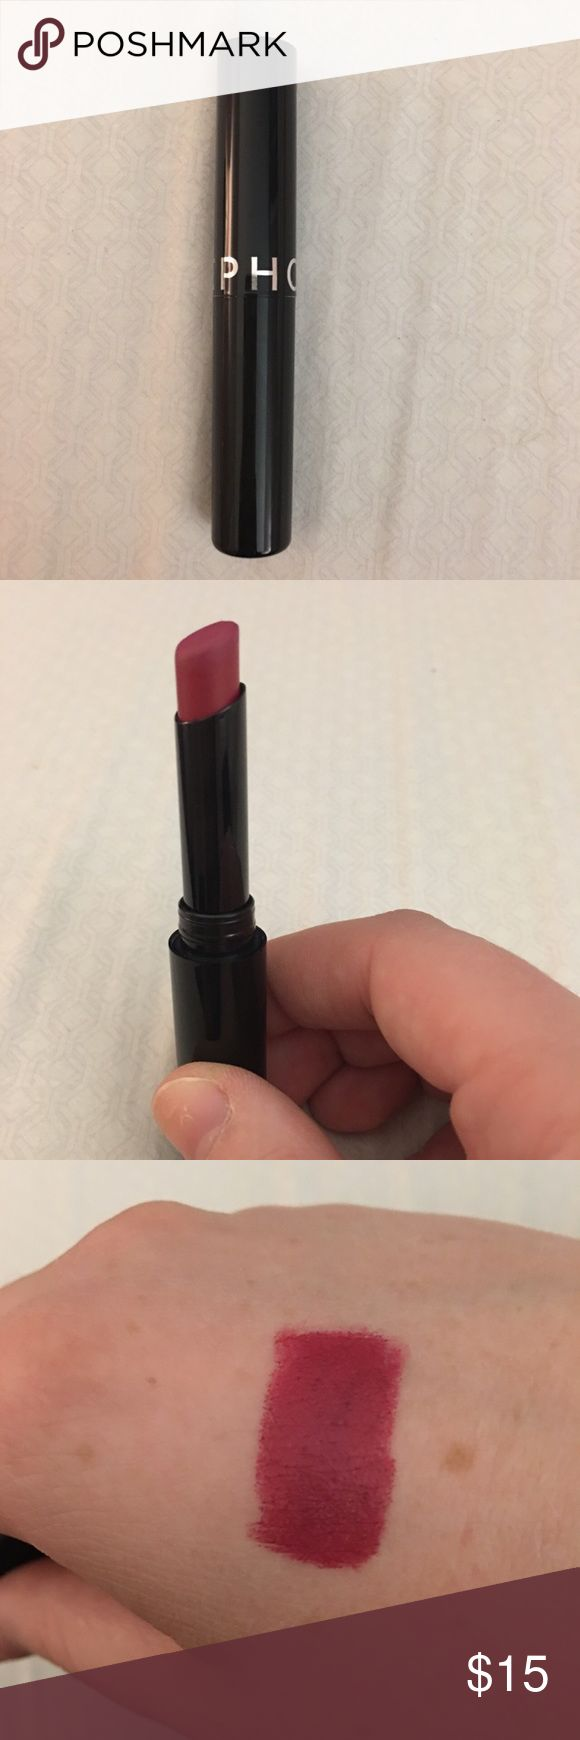 Sephora lipstick N21 Brand new Sephora lipstick. Only used to swatch. Color is too similar to other colors I have. #sephora #makeup #beauty #lipstick Sephora Makeup Lipstick